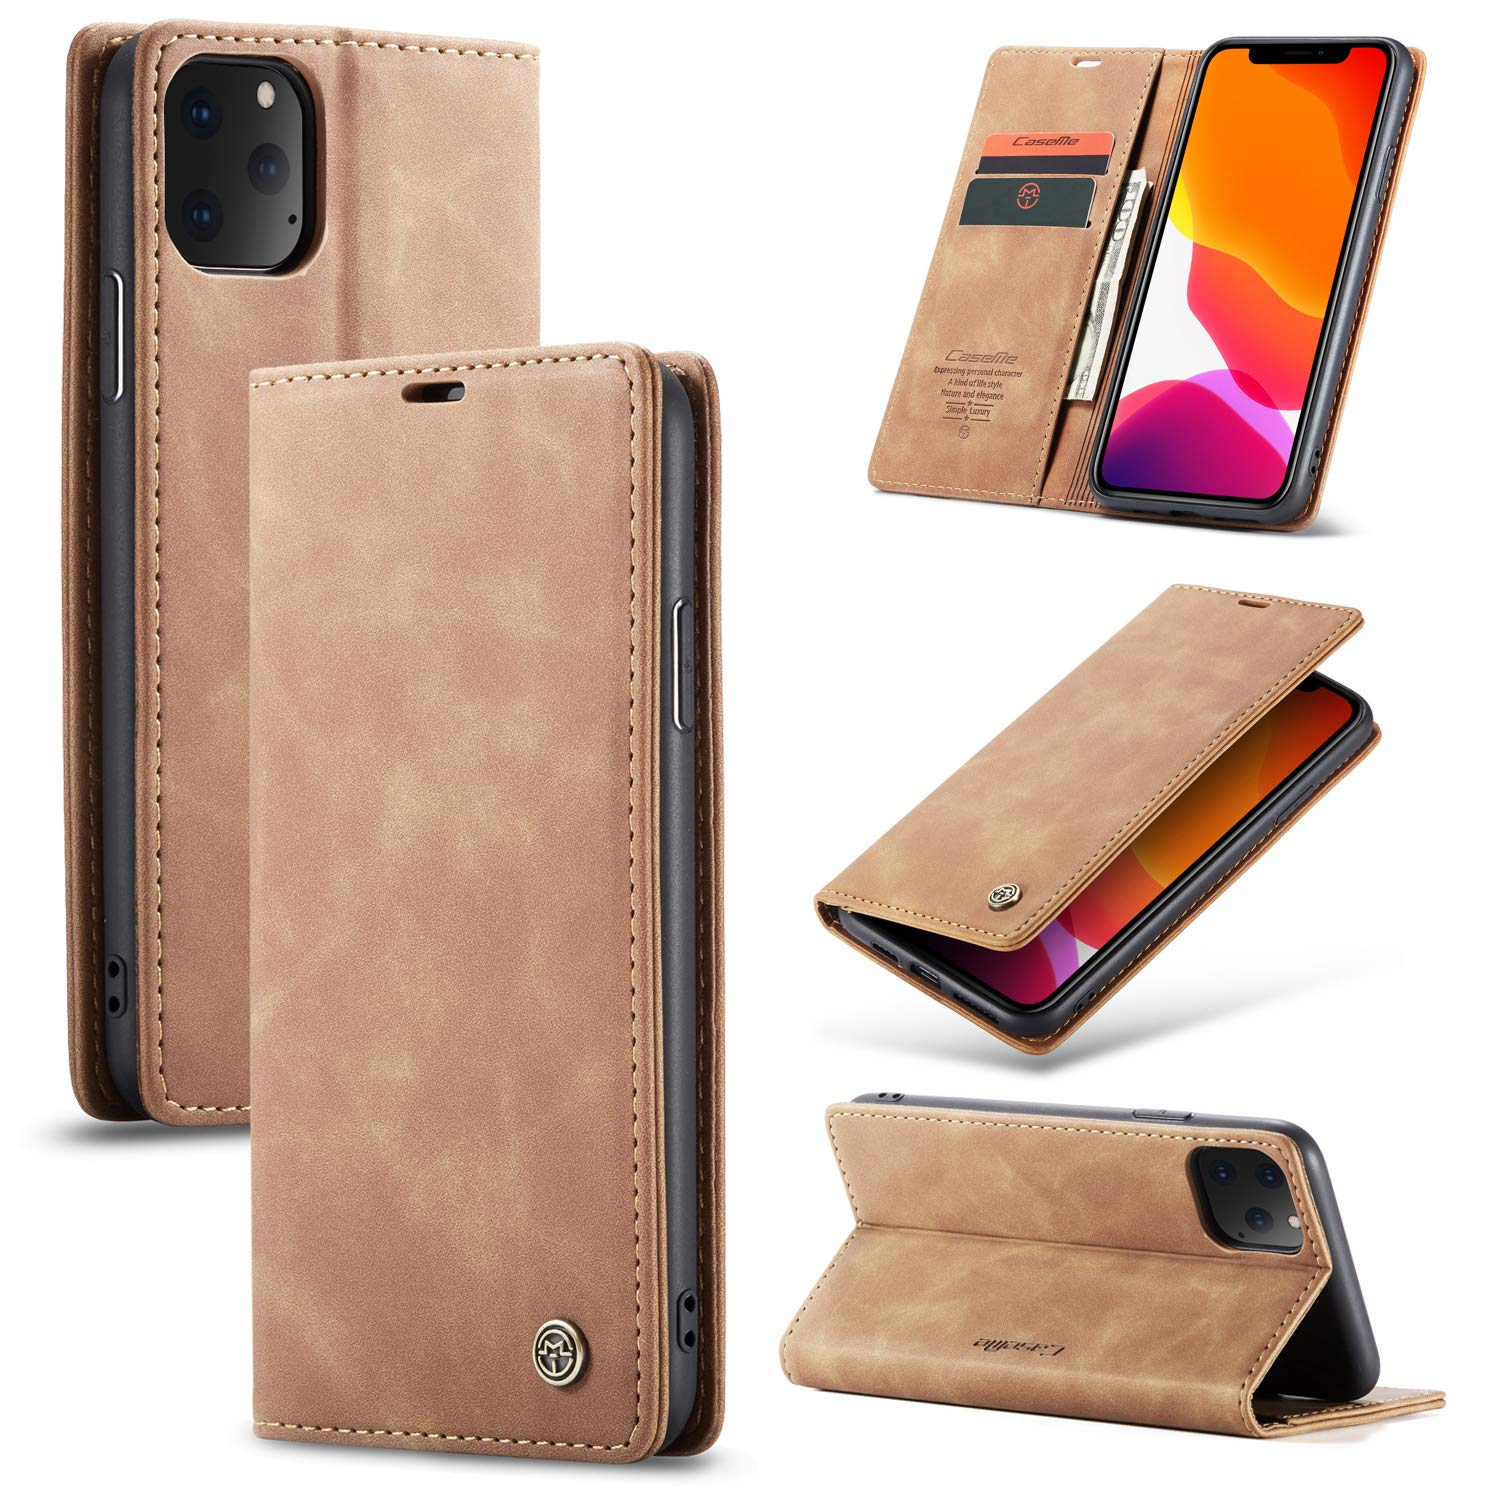 for 2019 iPhone 11 Pro 5.8'' Case, MeiLiio Genuine Leather Wallet Case Flip Folio Cover Book Style Retro Vintage Stand Protective Case with Card Slots & ID Holder for iPhone 11/XI Pro, Brown by MeiLiio